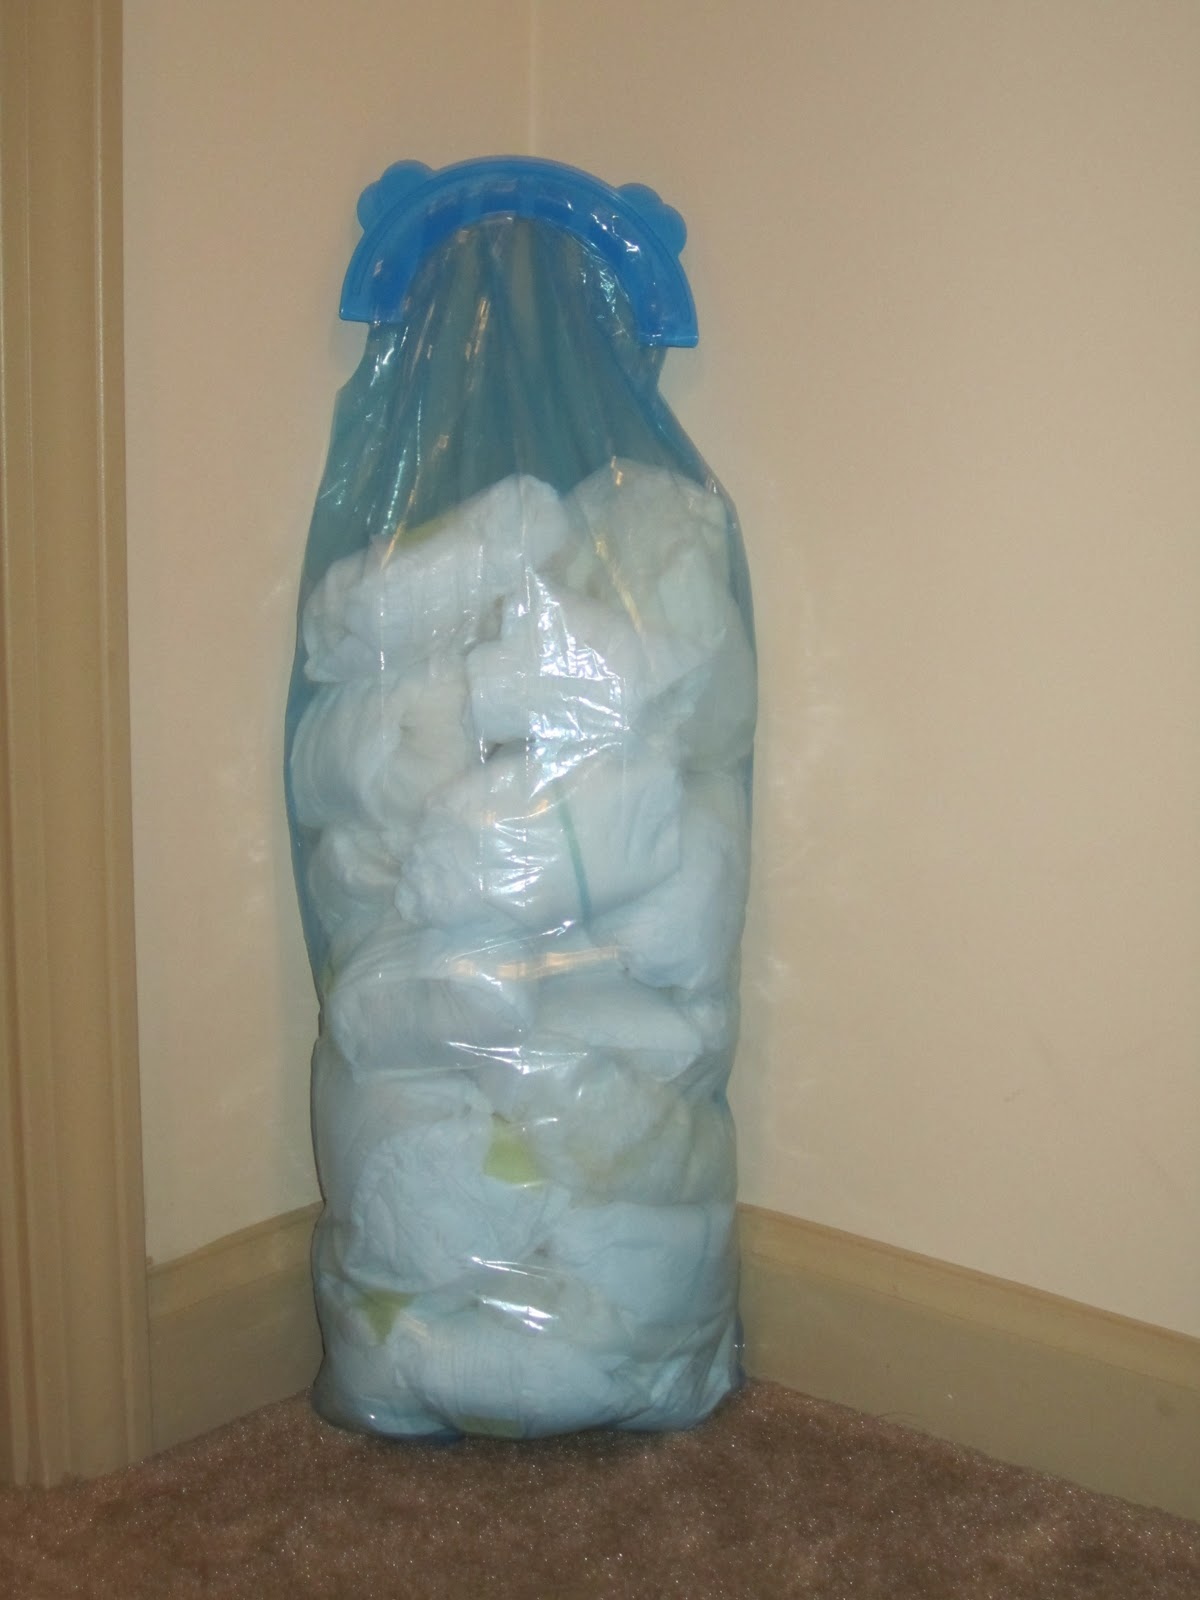 Our mini-mountain of diapers (shown in the Arm & Hammer Diaper Pail